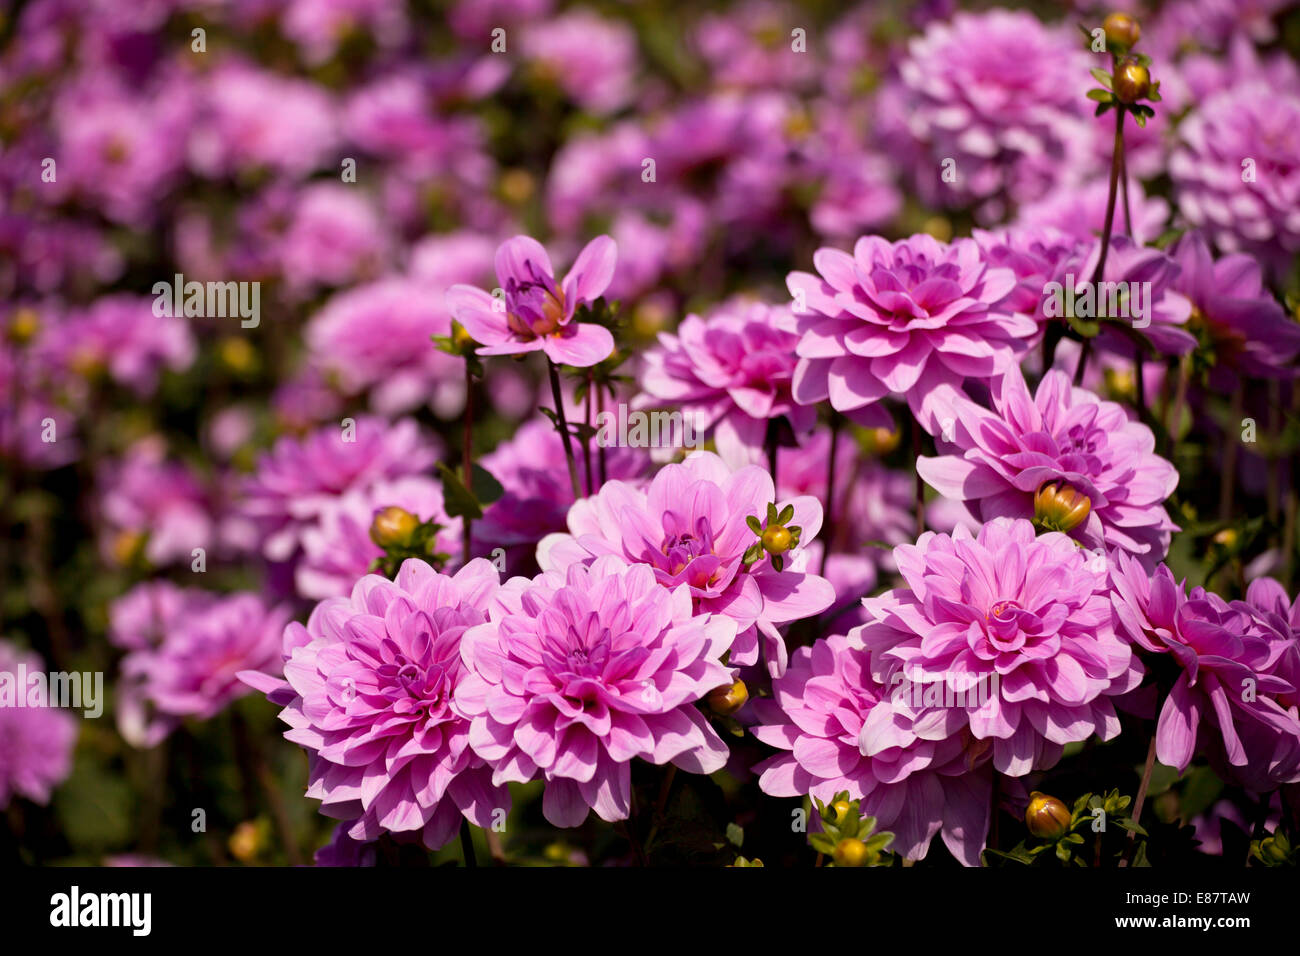 Dahlia flowers stock photos dahlia flowers stock images alamy dahlia flowers germany stock image izmirmasajfo